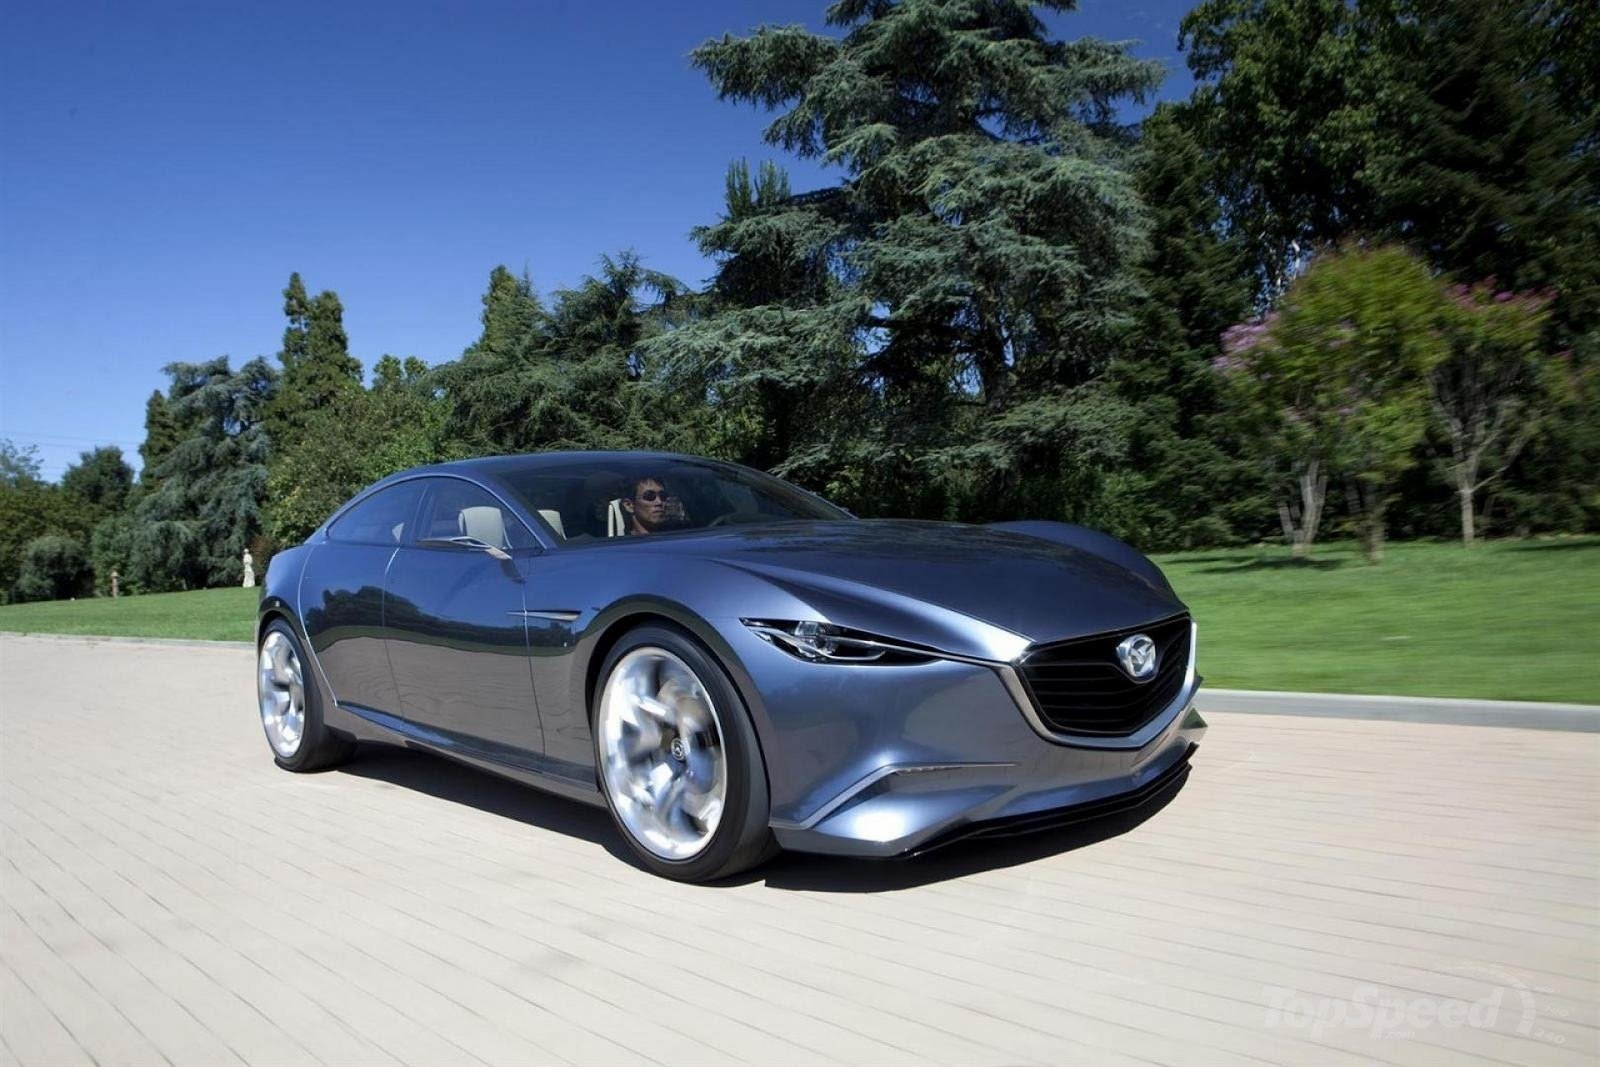 Latest Cool Car Wallpapers Mazda Cars 2013 Free Download